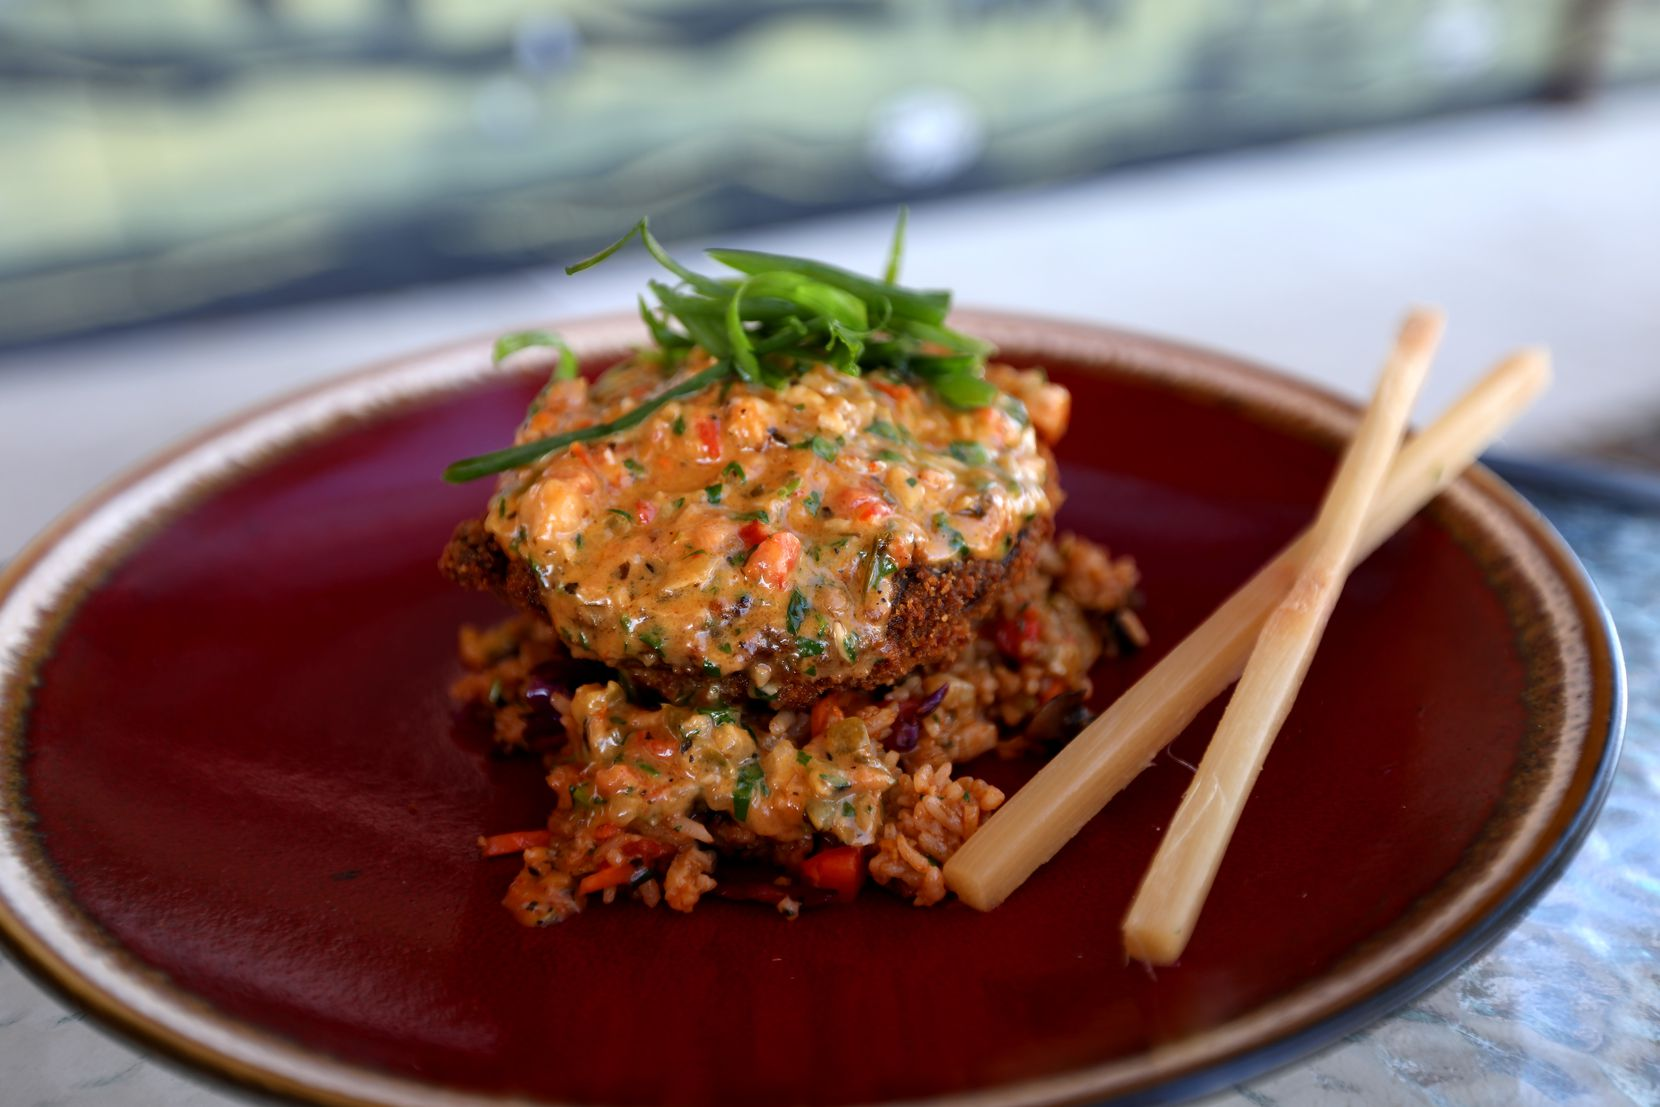 The Dragonseed is one of the menu items that takes a turn from traditional Cajun fare. It's a panko-crusted Portobello mushroom stuffed with crawfish and topped with a blackened cream sauce. Sugar cane chopsticks come on the side.